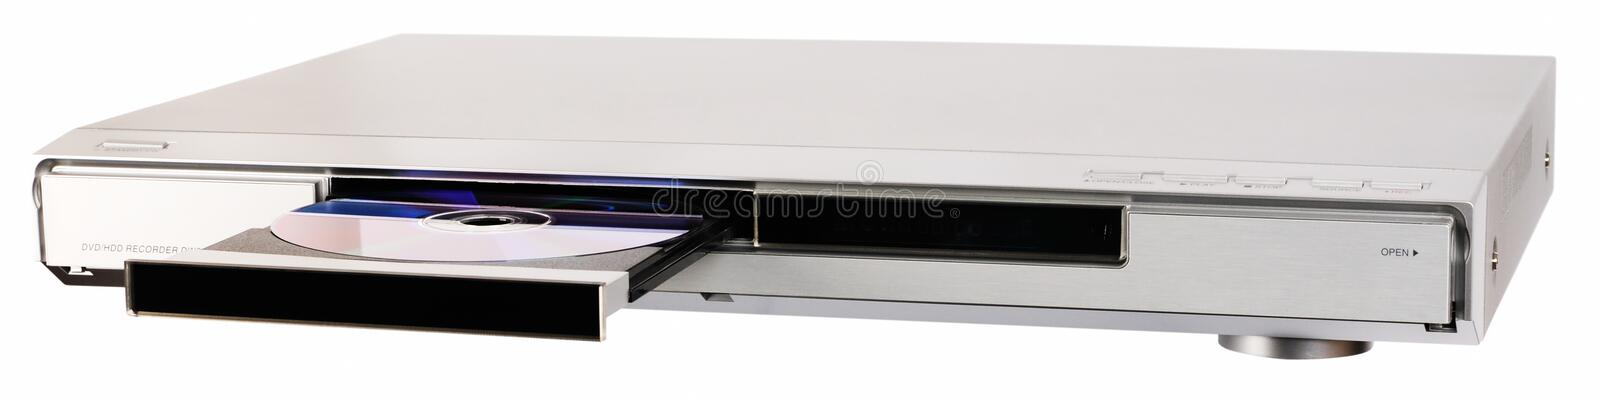 DVD recorder with open tray royalty free stock photos